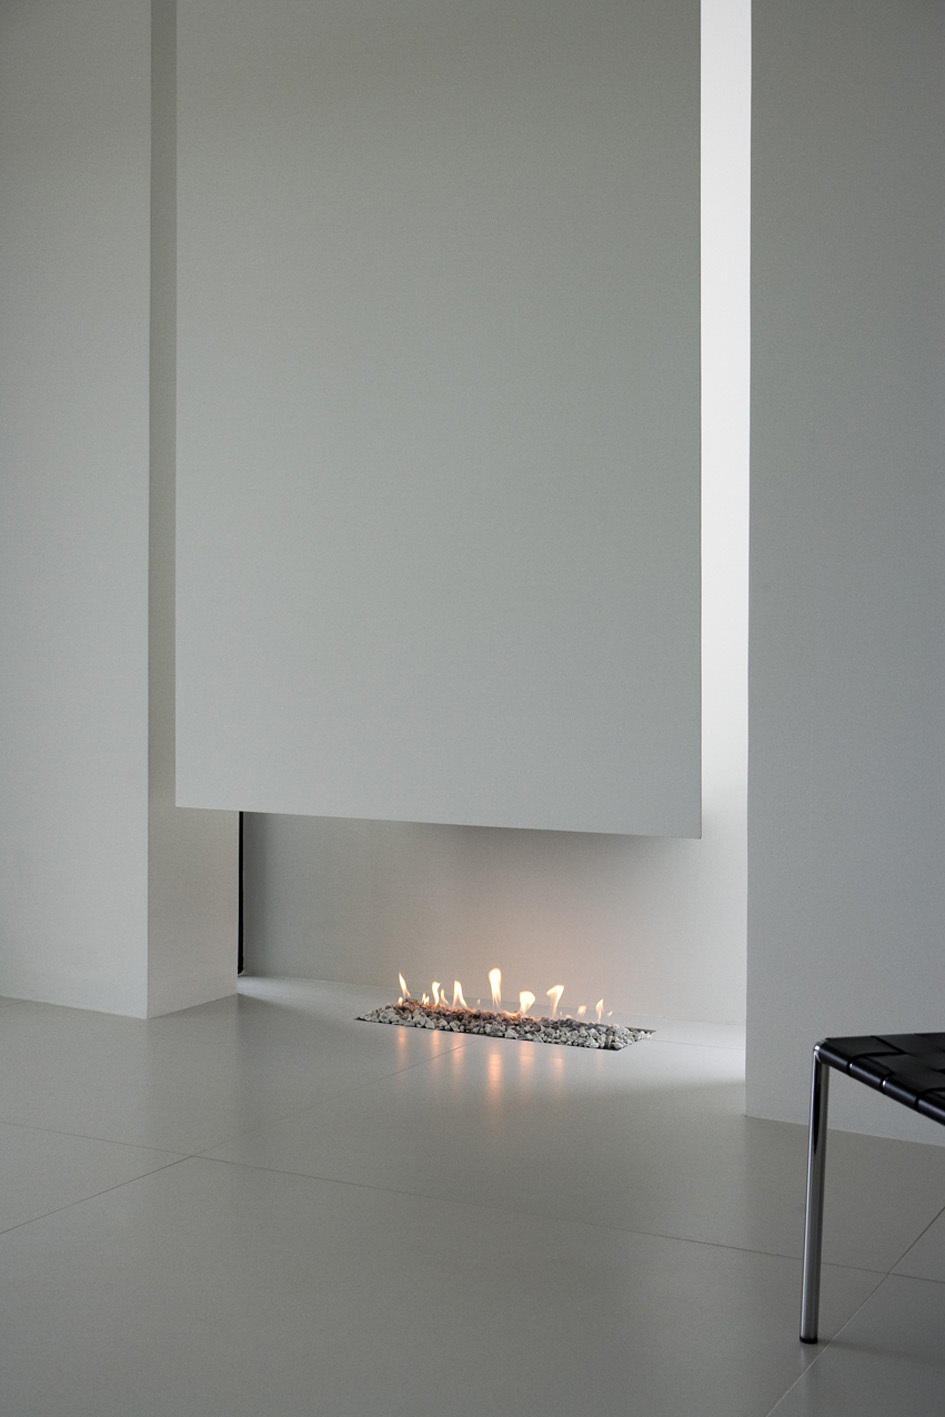 the perfect fireplace in Monolithic Mass Empowered by Simplicity - B25 House by PK Arkitektar homesthetics 1 (0)